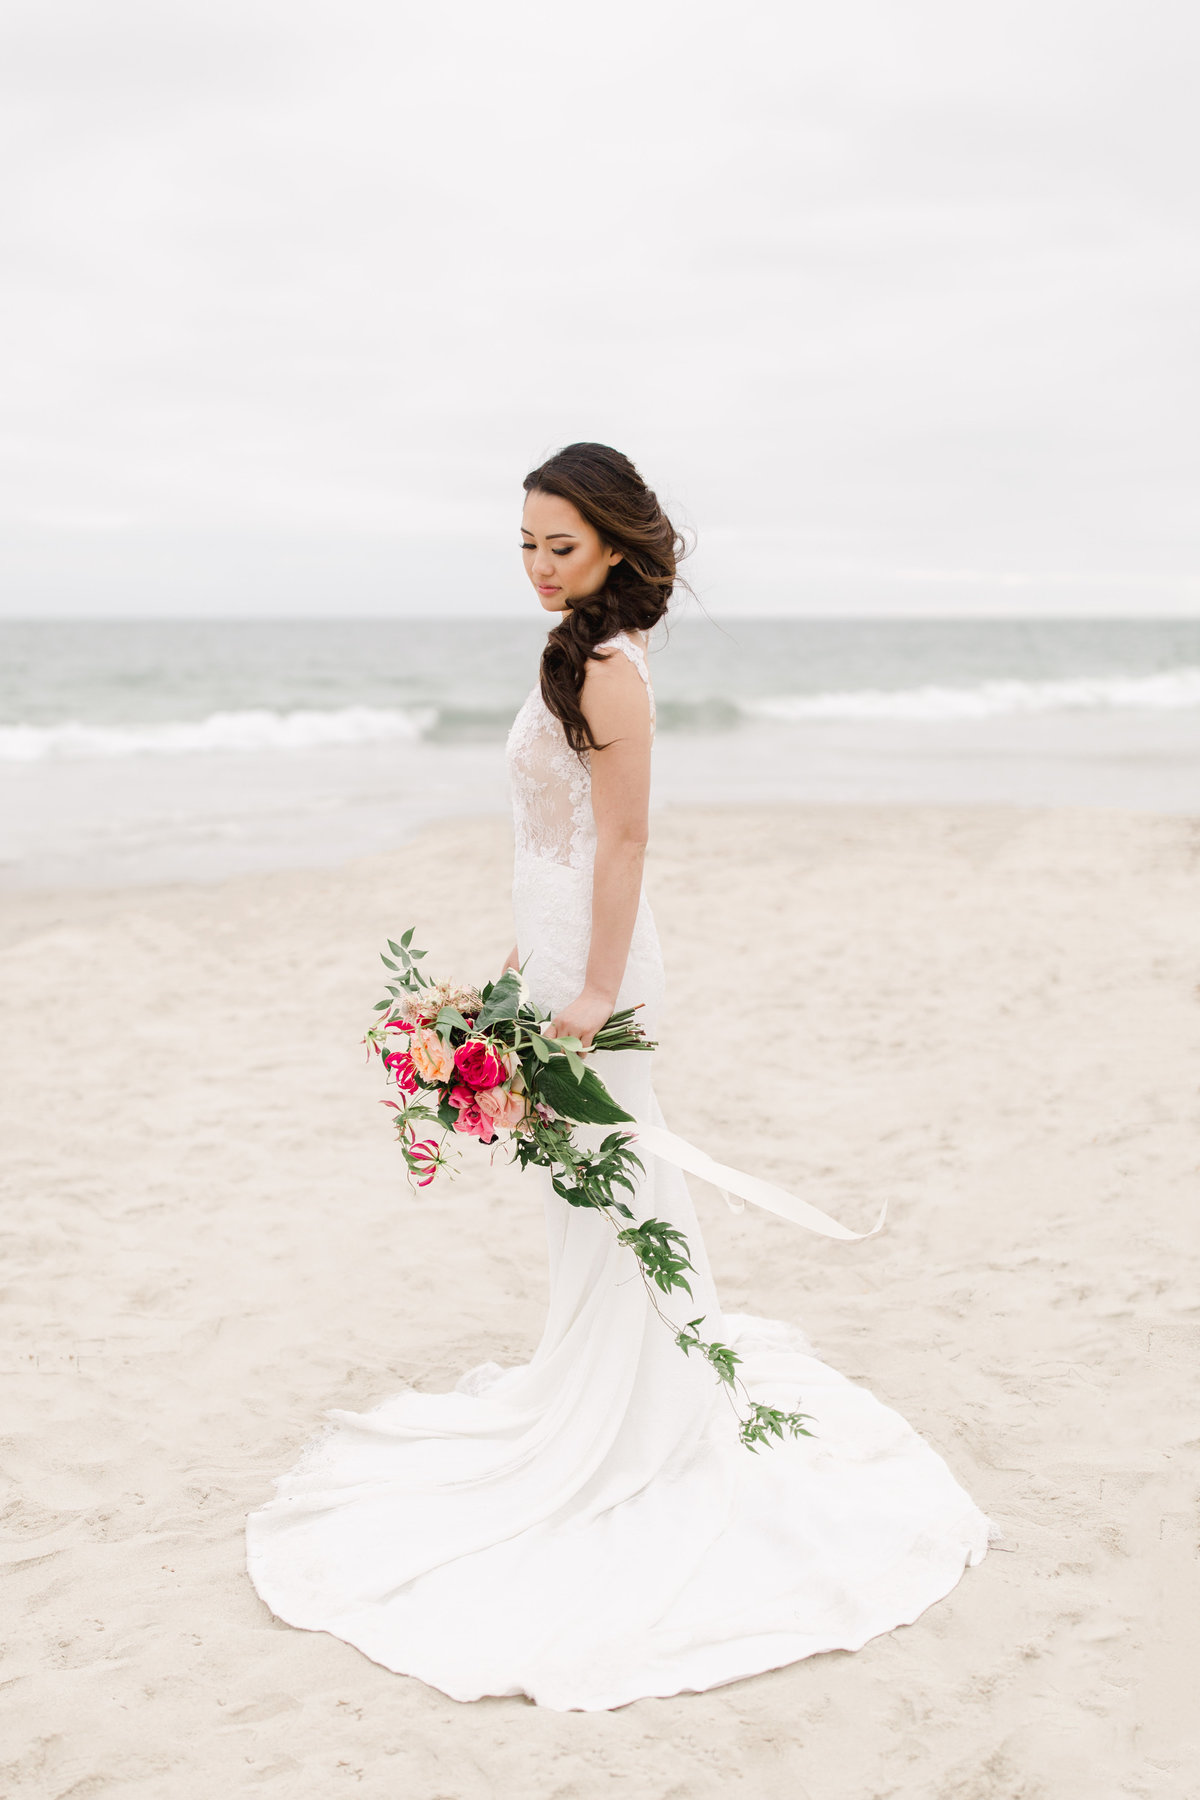 Babsie-Ly-Photography-Monarch-Beach-Resort-Dana-Point-Wedding-Asian-Bride-Couple-003